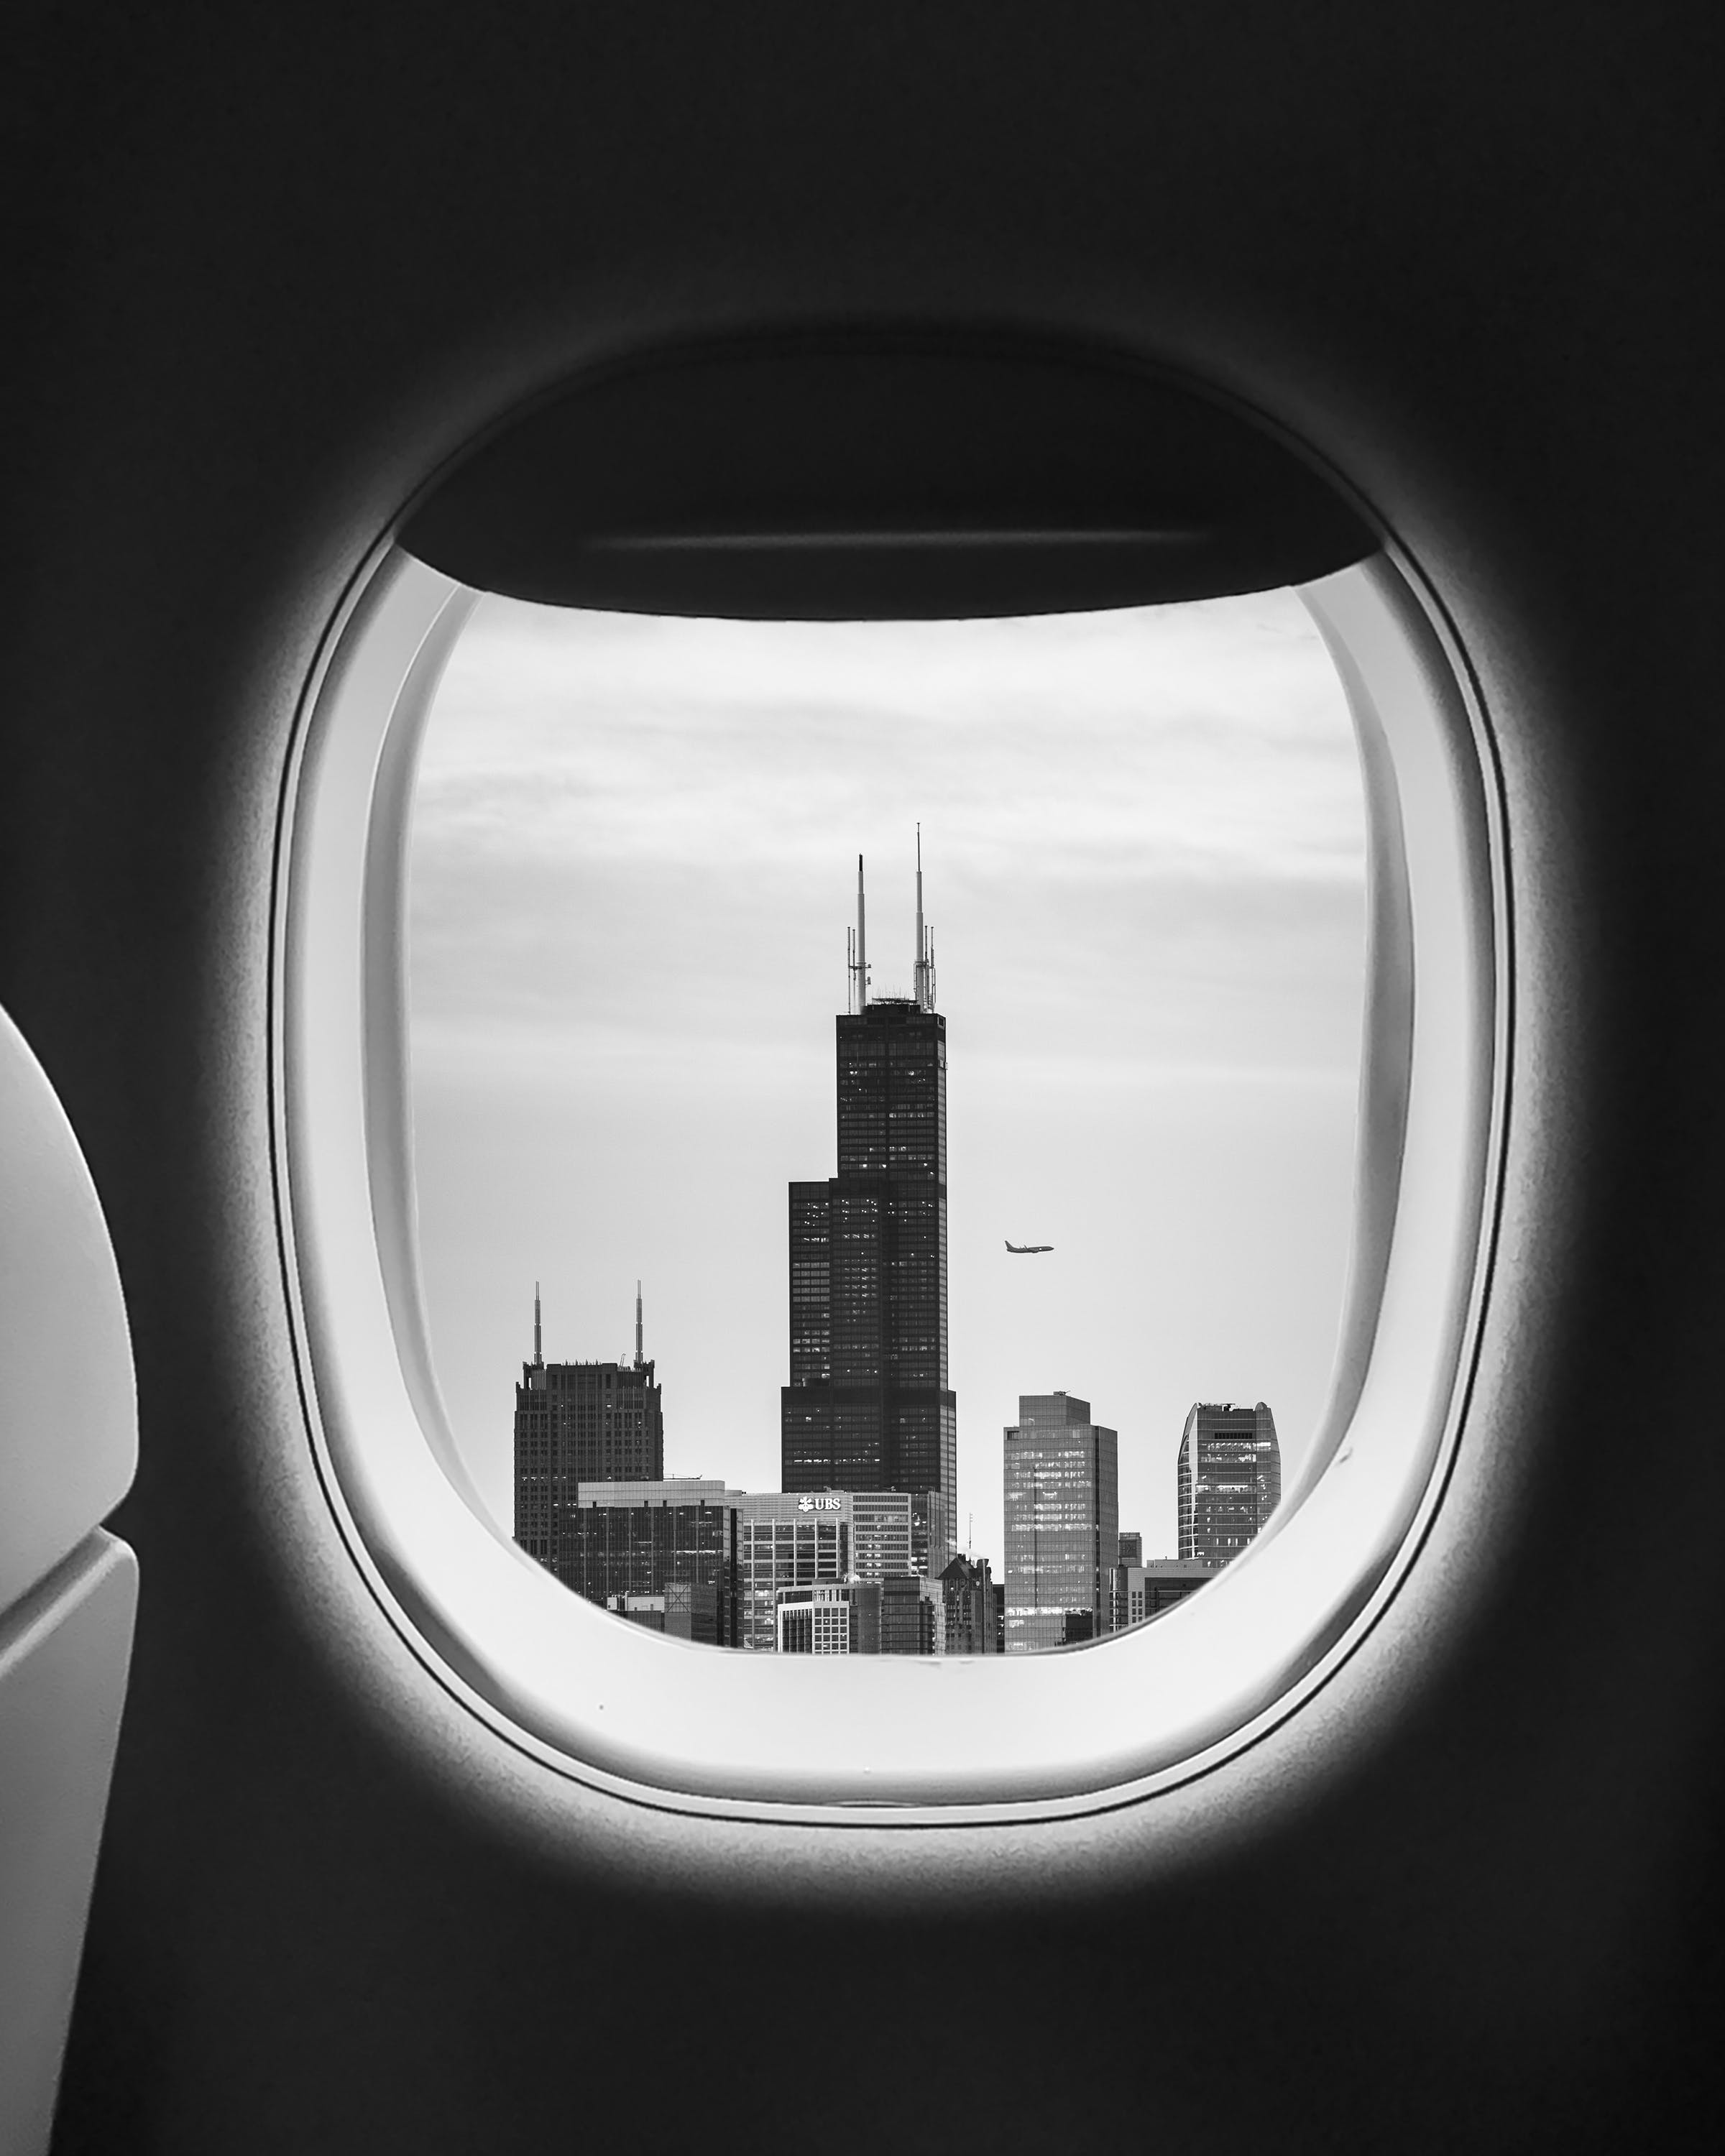 Window View of an Airplane